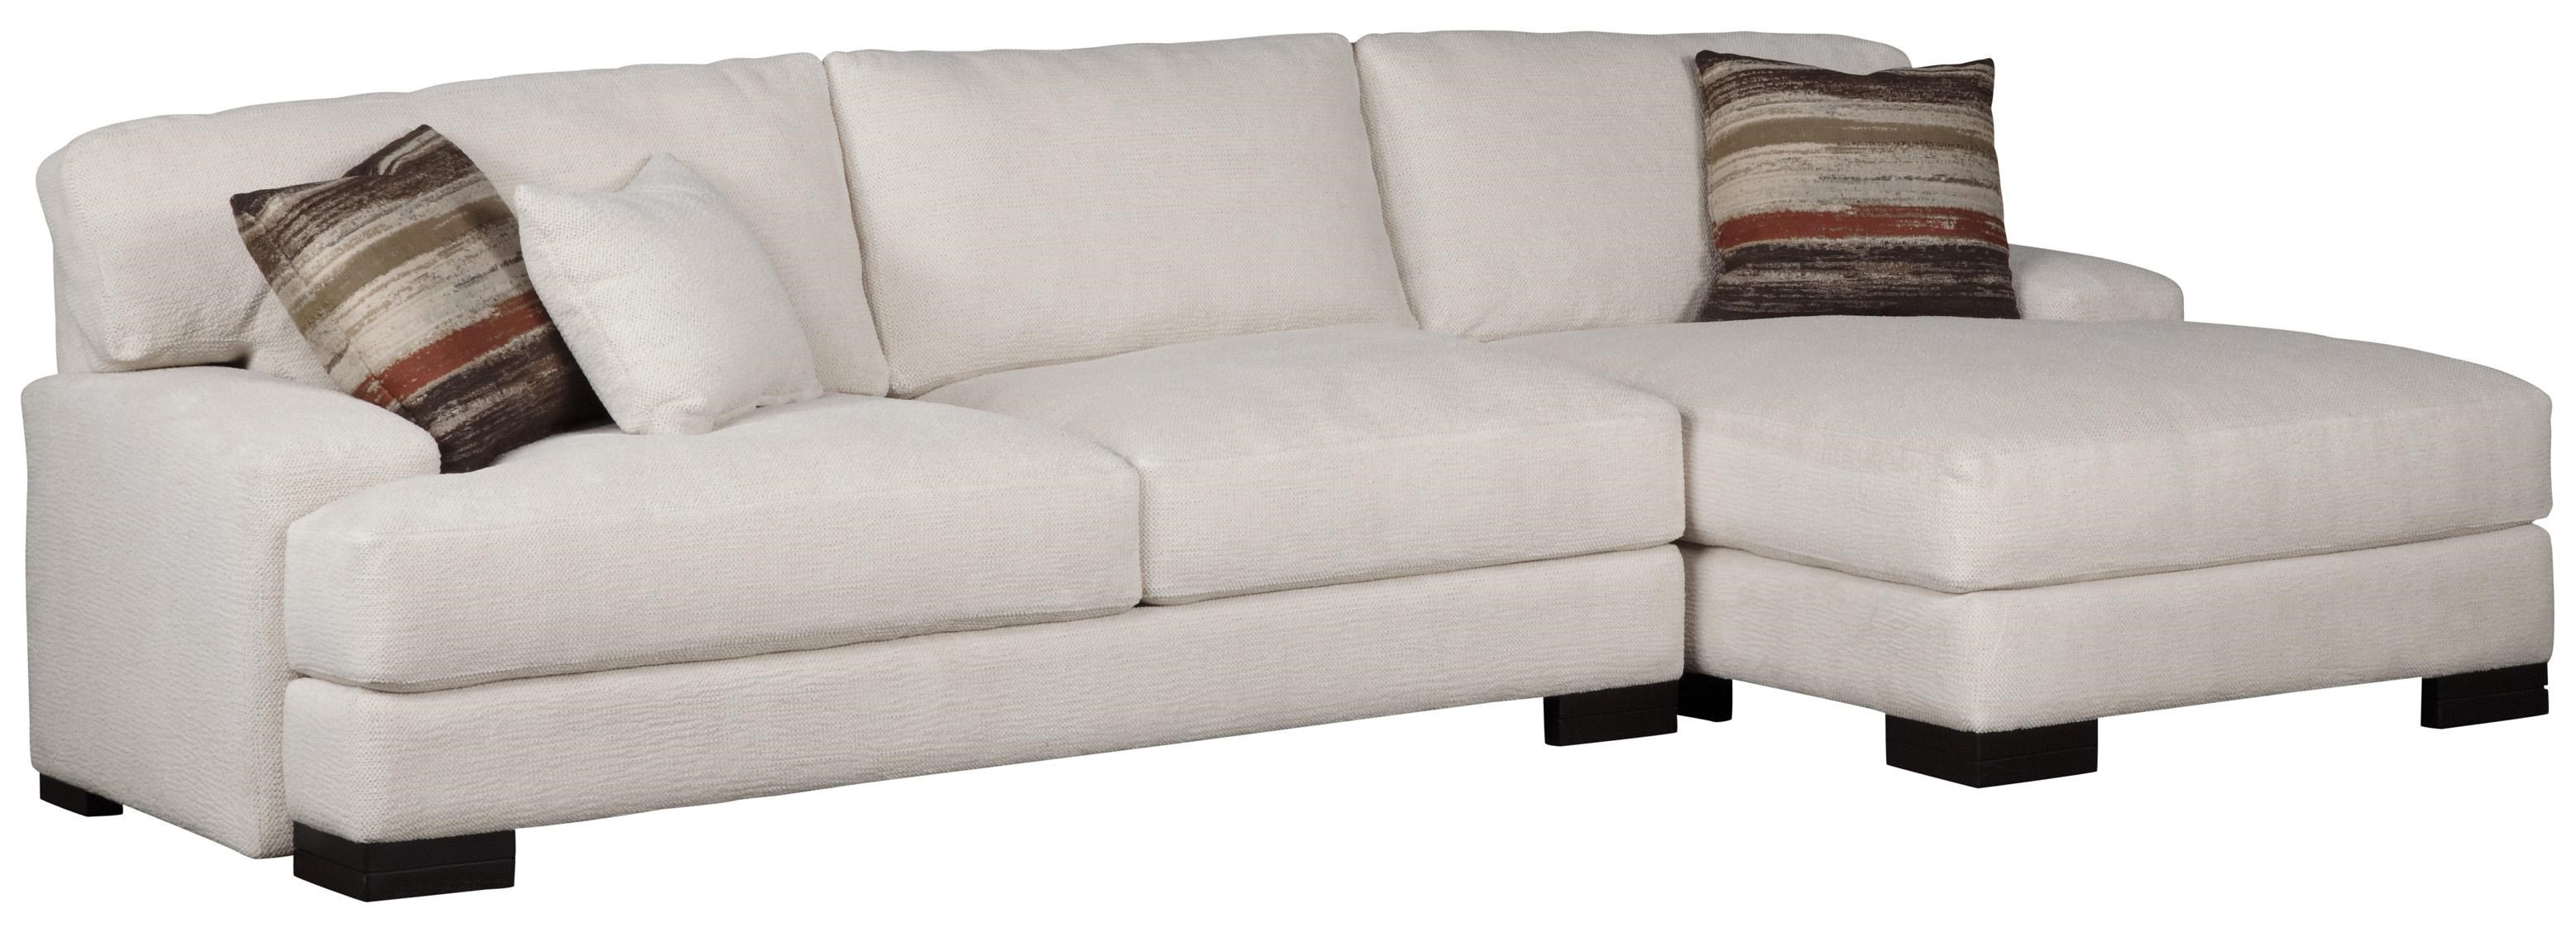 Jonathan Louis Burton Modern Sectional With Right Chaise   Olindeu0027s  Furniture   Sectional Sofas